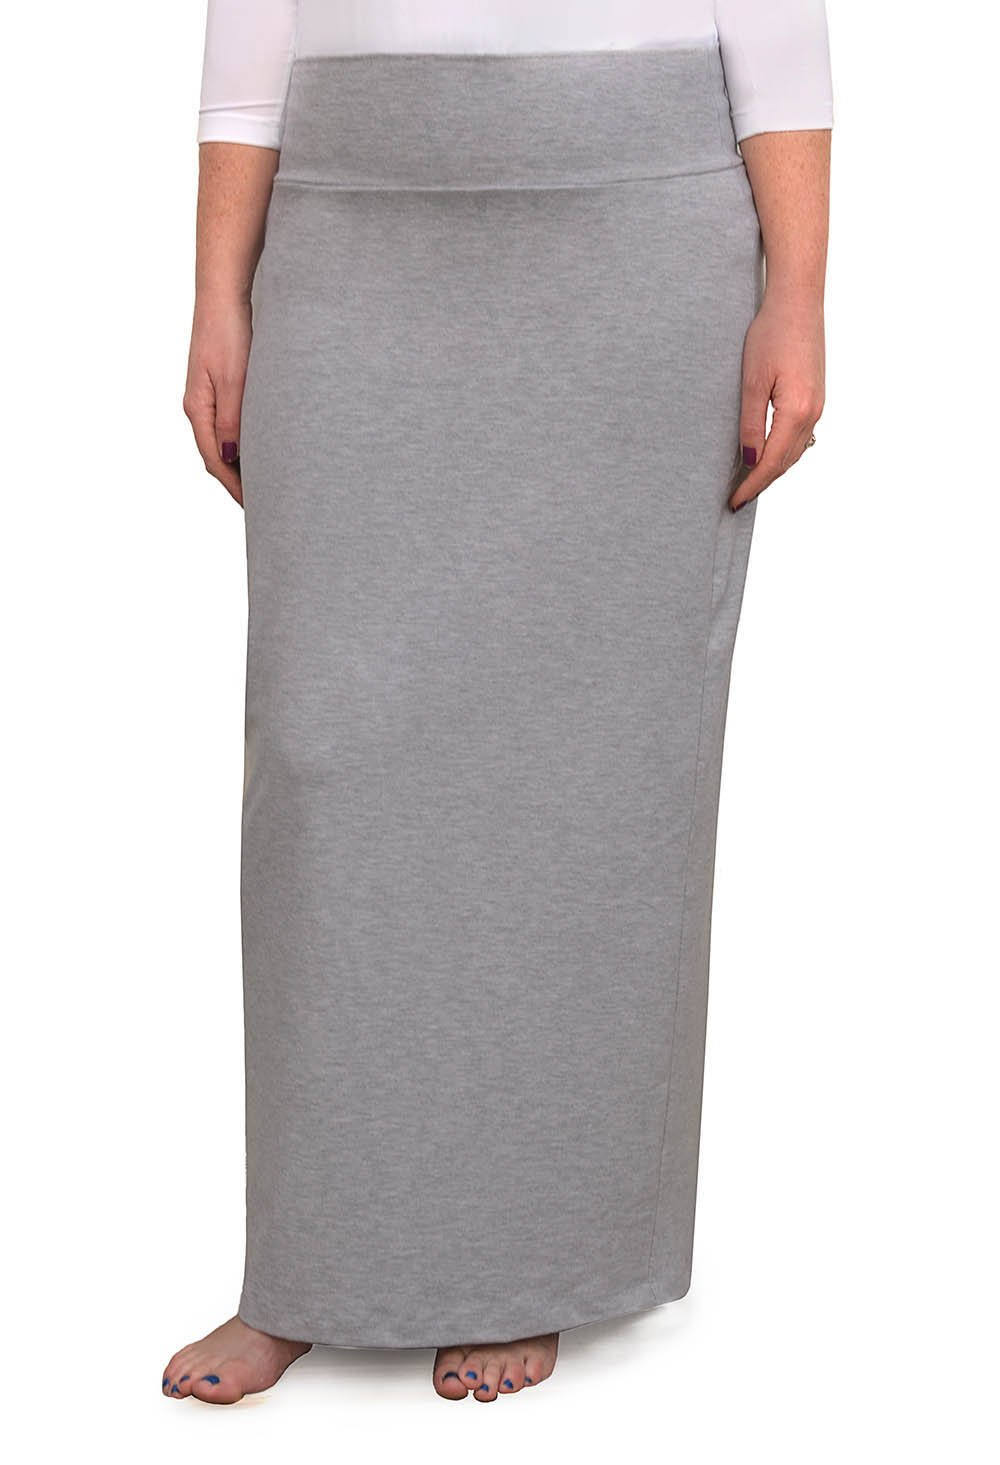 Kosher Casual Women's Modest Cotton Stretch Long Maxi Pencil Skirt Large Heather Grey